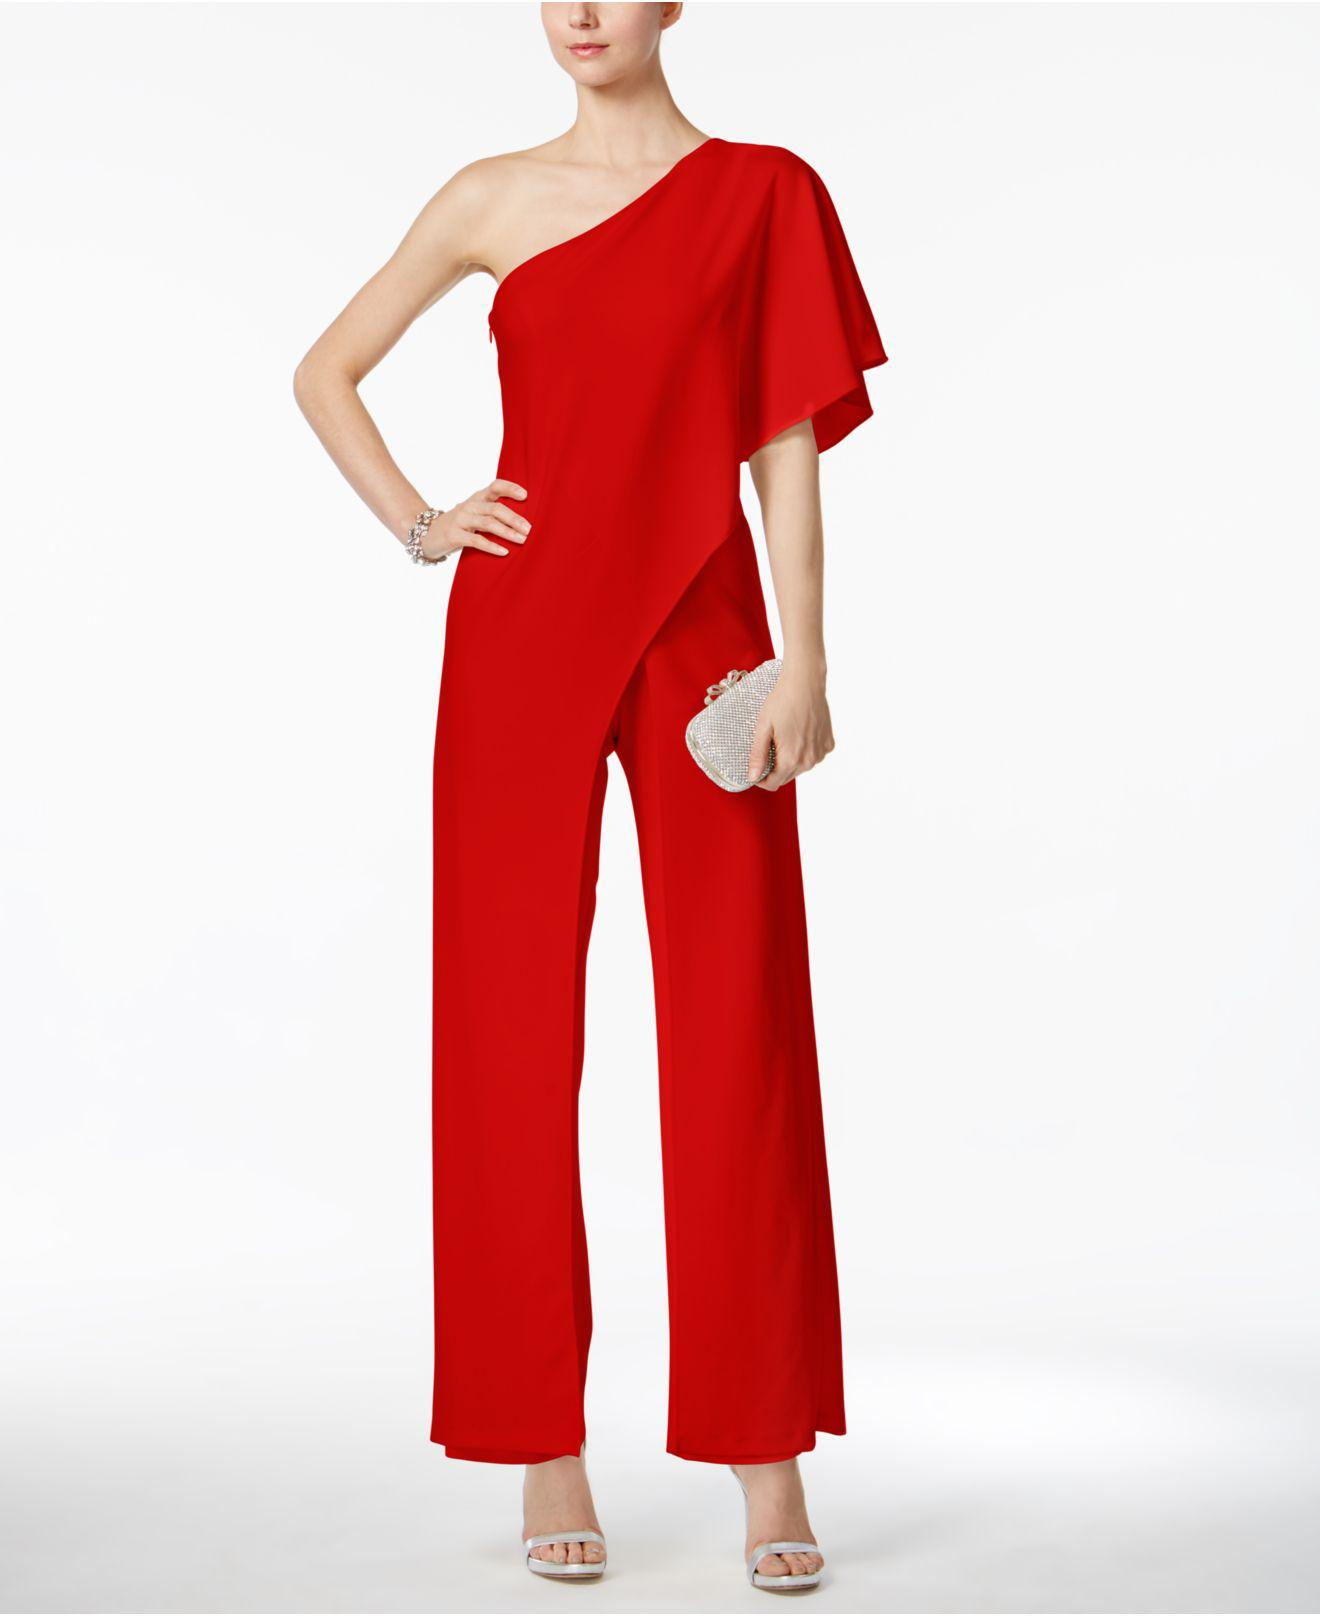 a4750d2812c1 Lyst - Adrianna Papell Draped One-shoulder Jumpsuit in Red